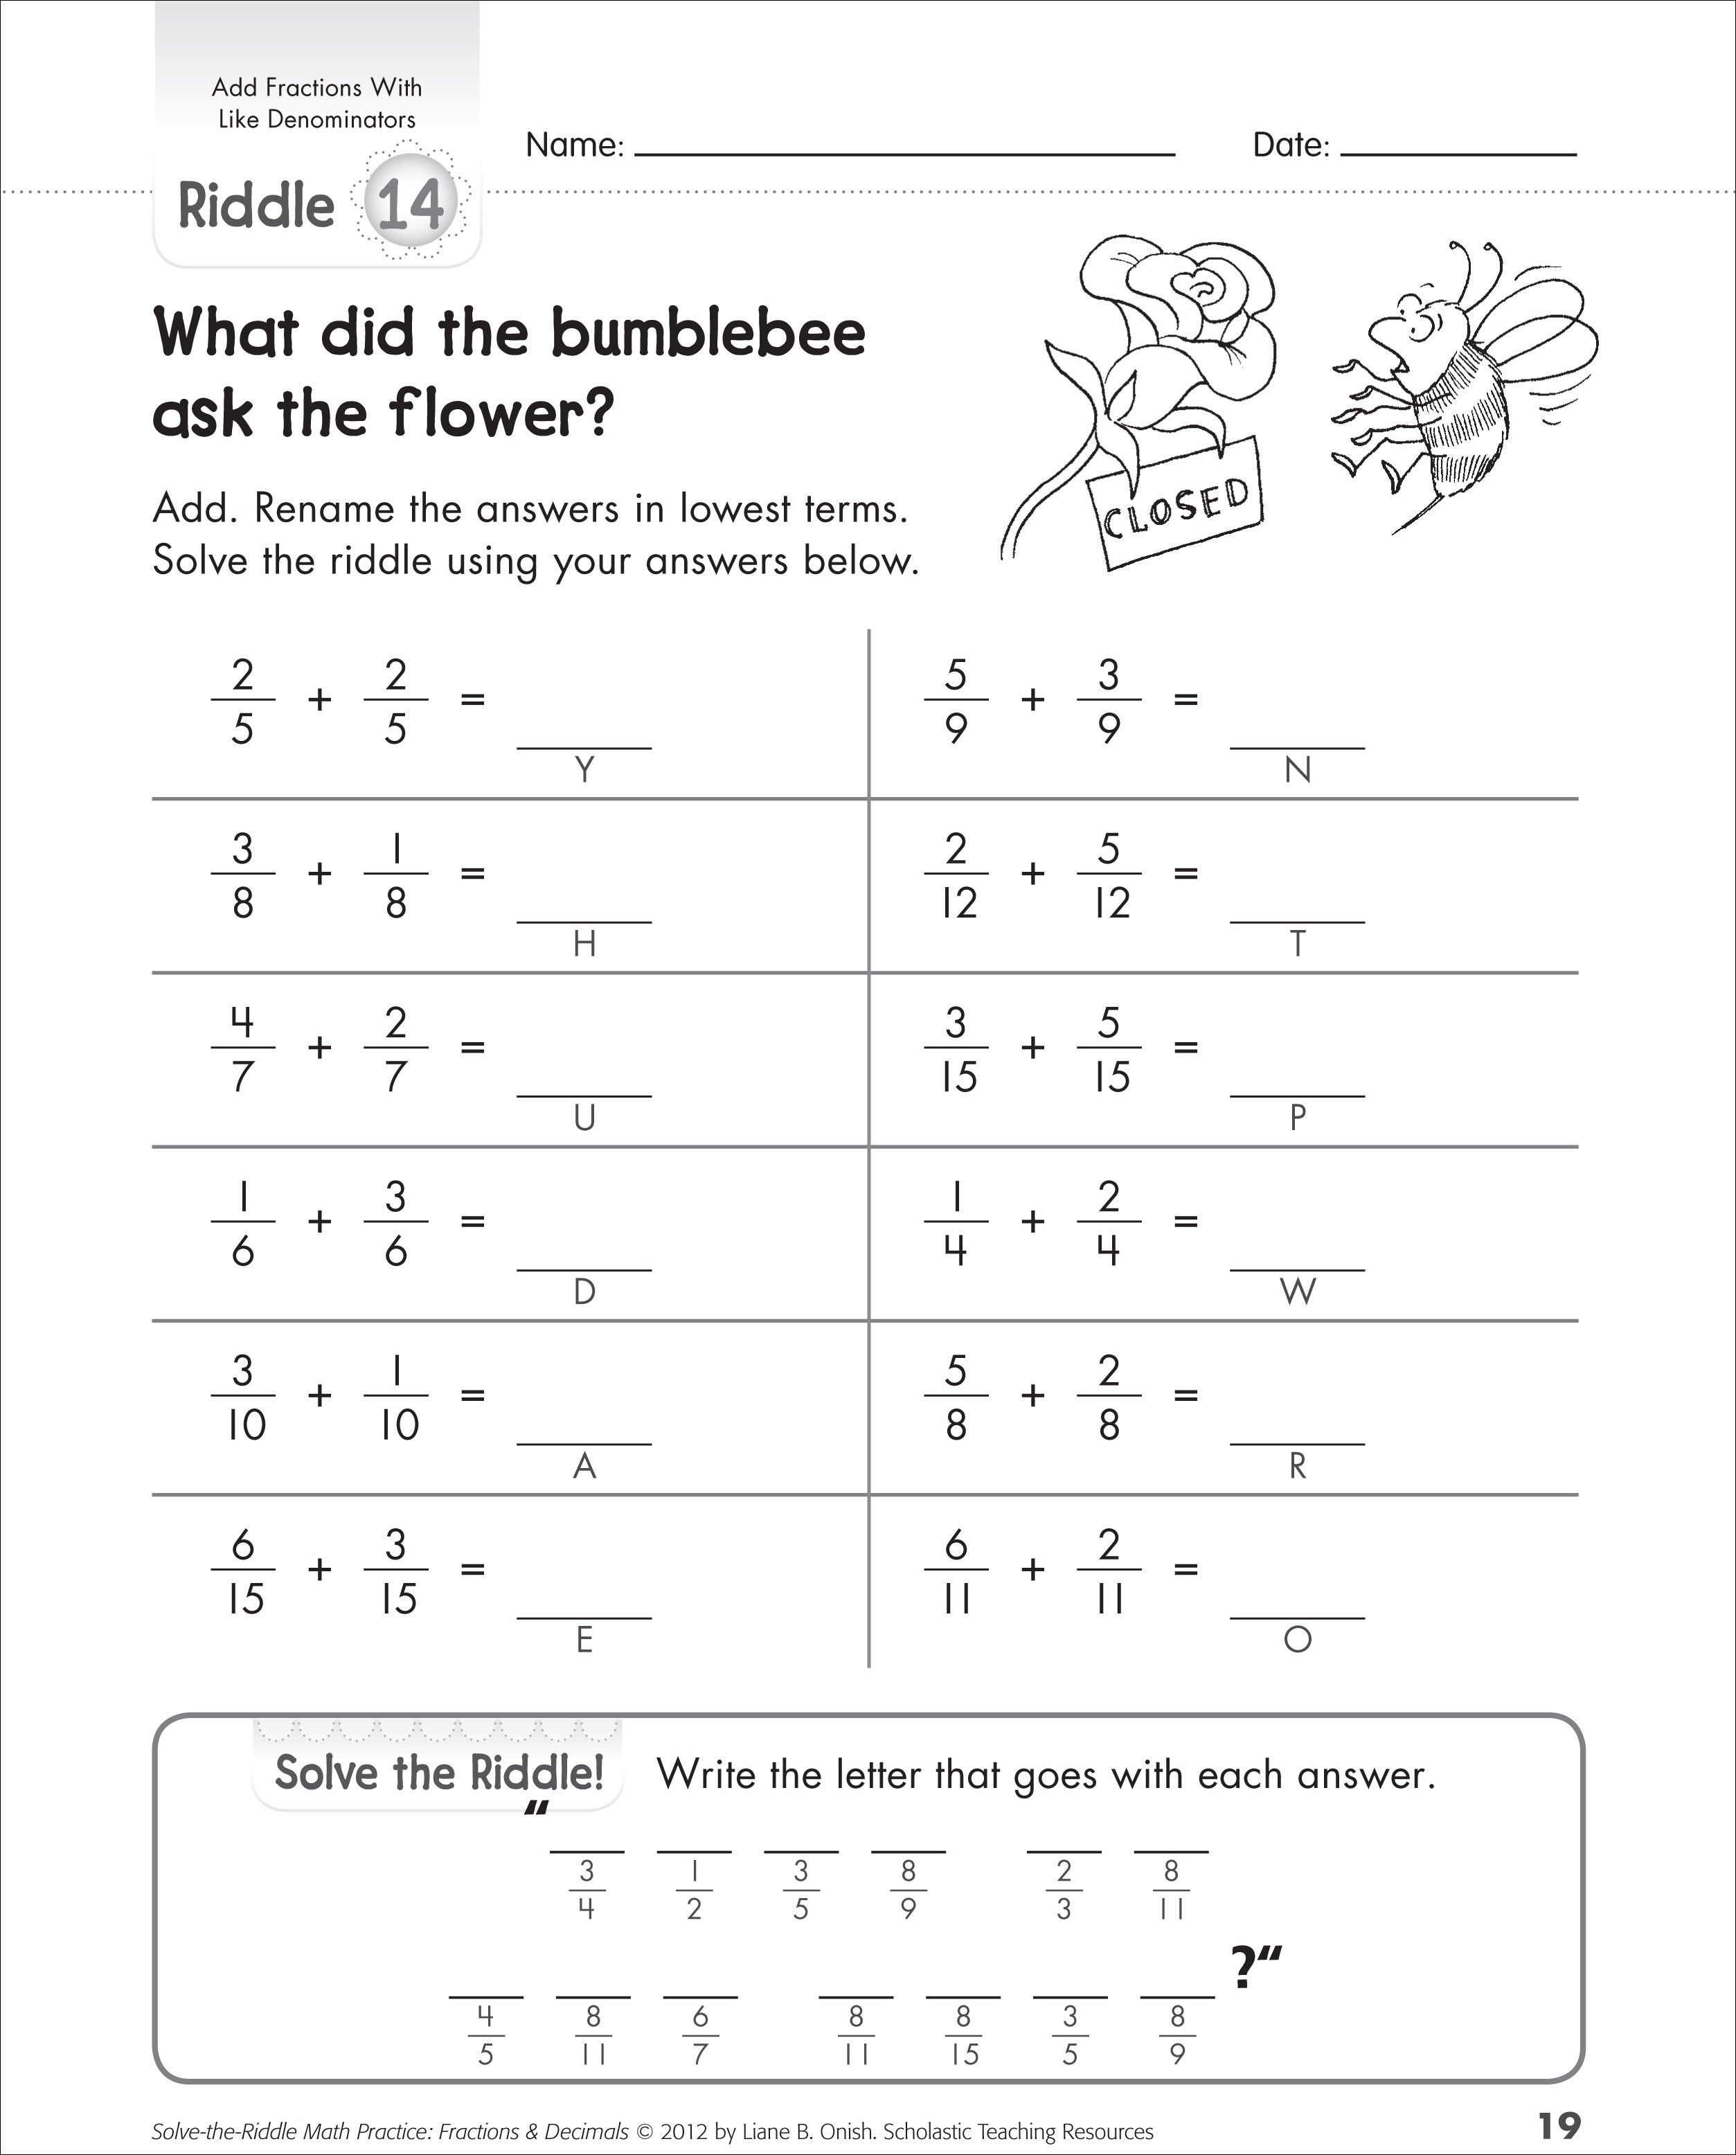 Adding Fractions With Same Denominators Worksheets